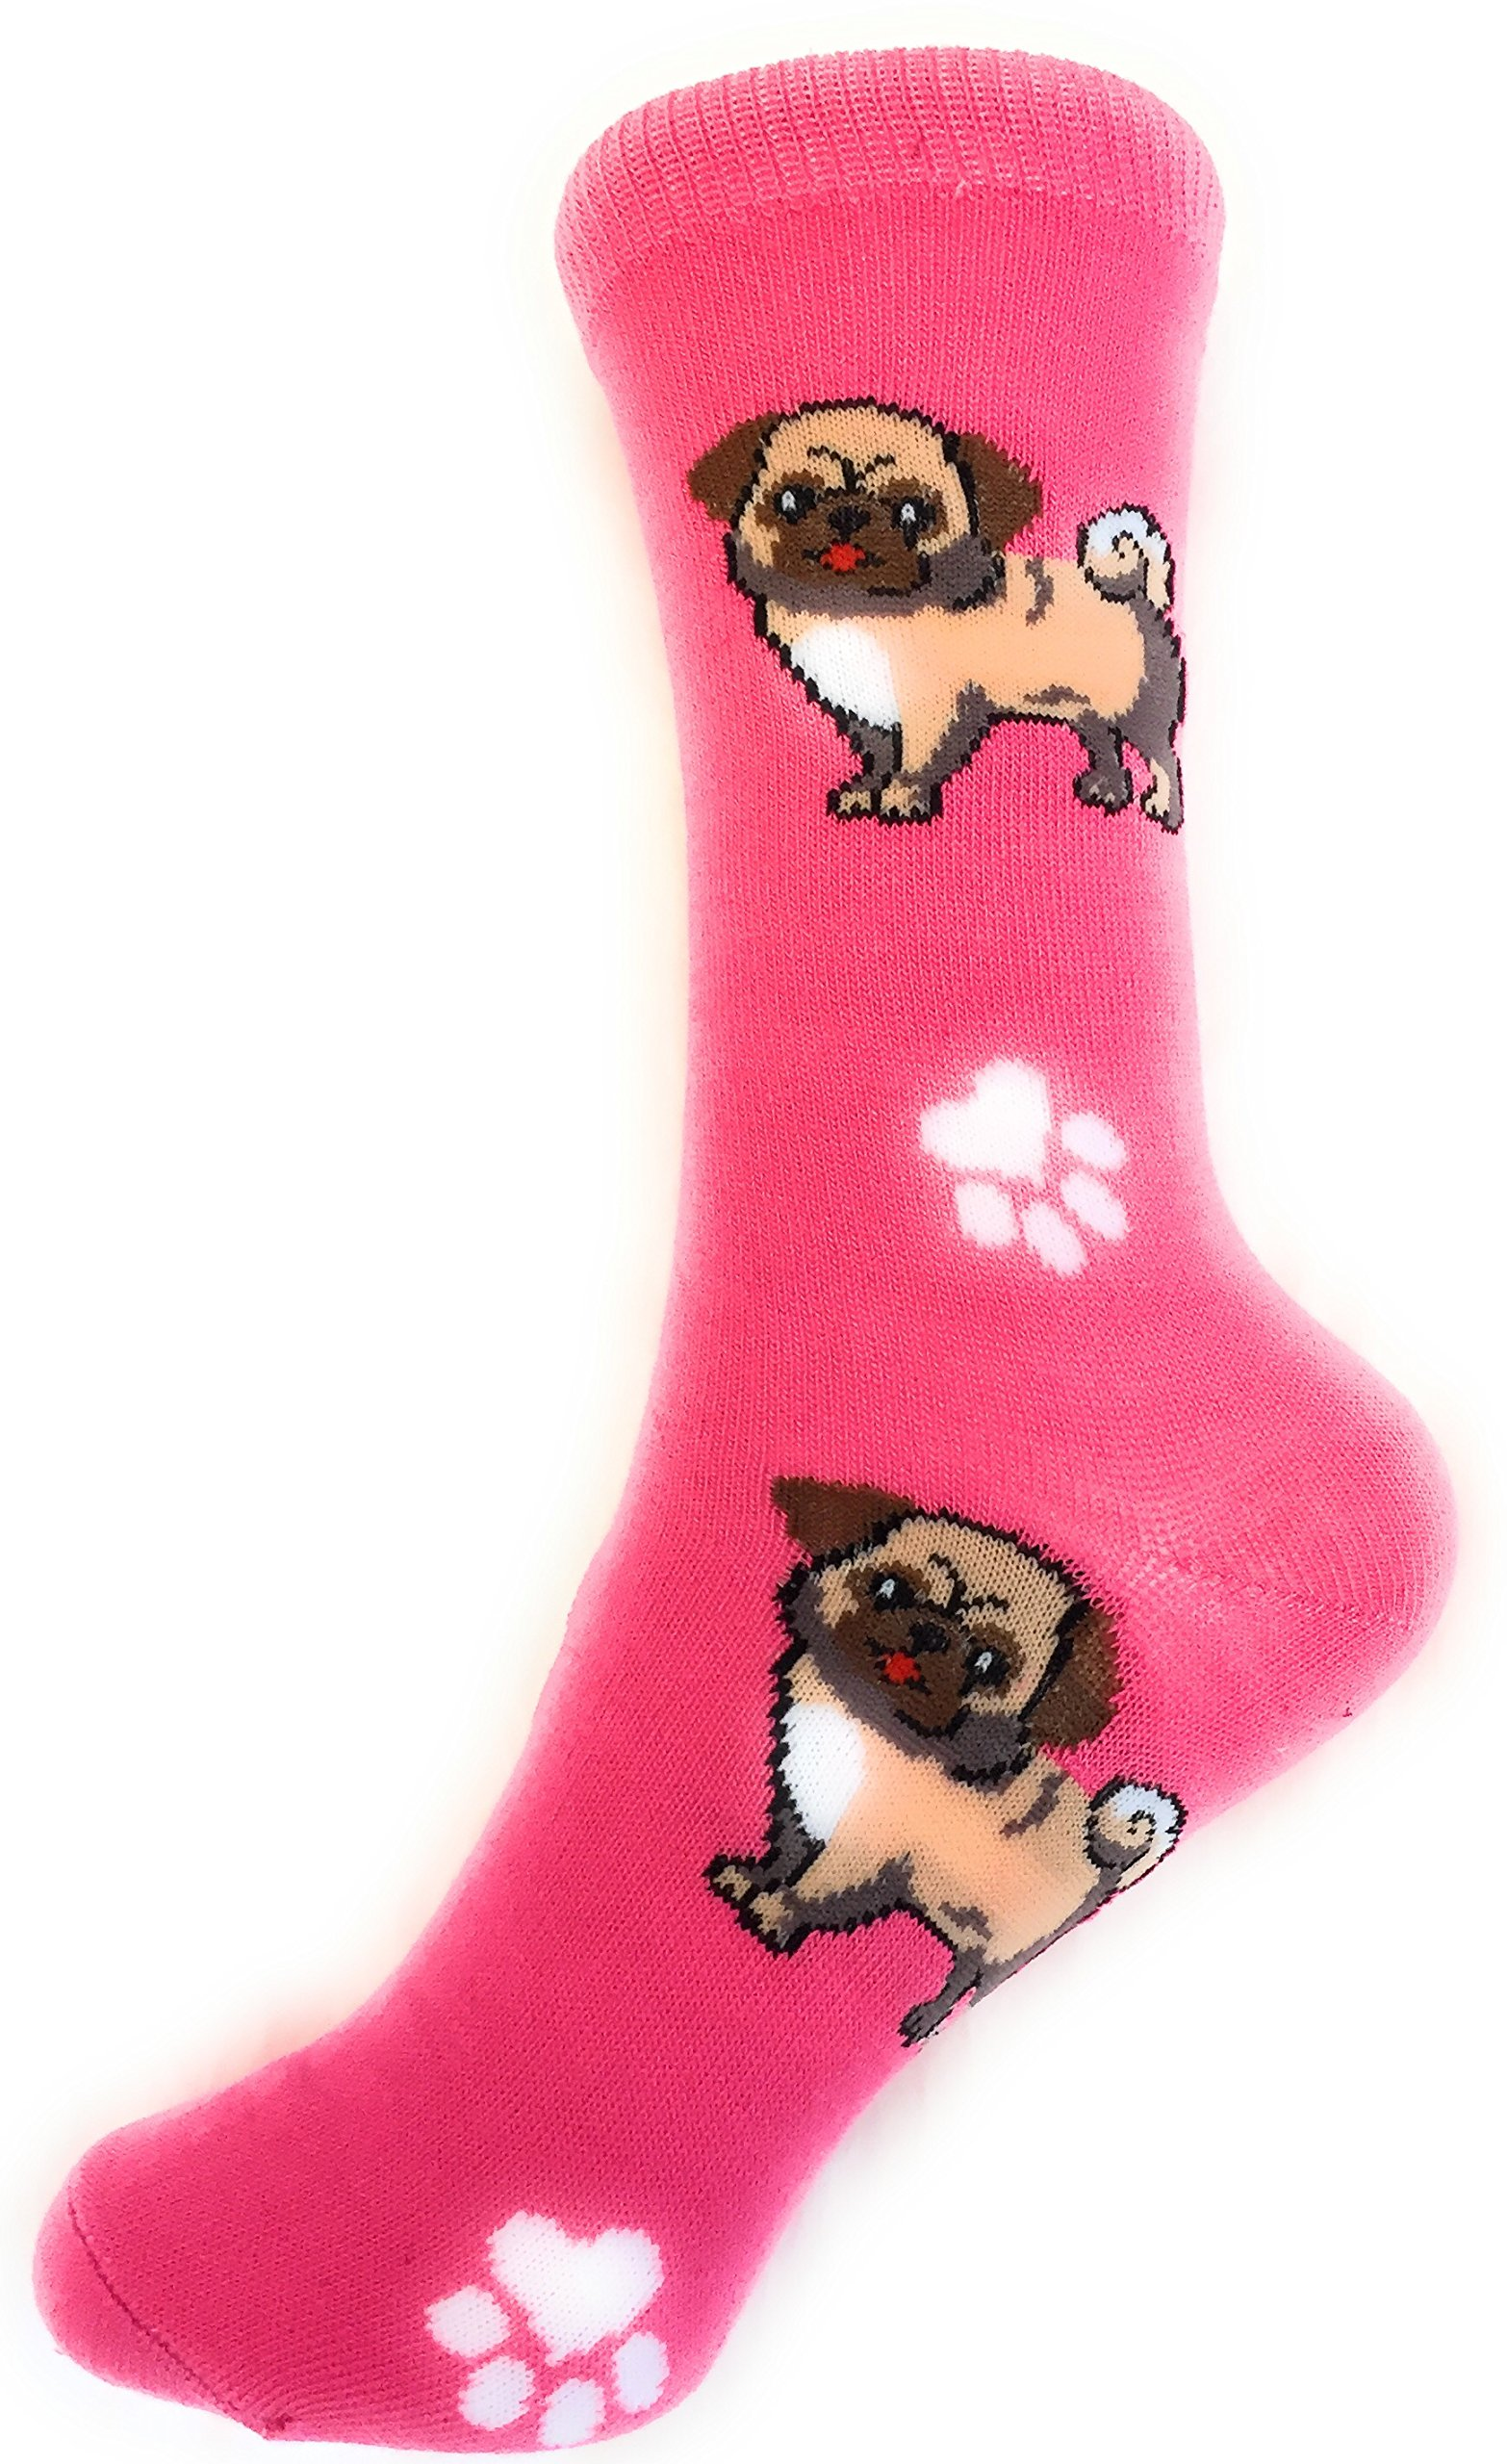 Socks-Women Crew Novelty Comfy Cozy, Trendy, Fashionable and Fun Patterns To Love (PUGS-PINK)